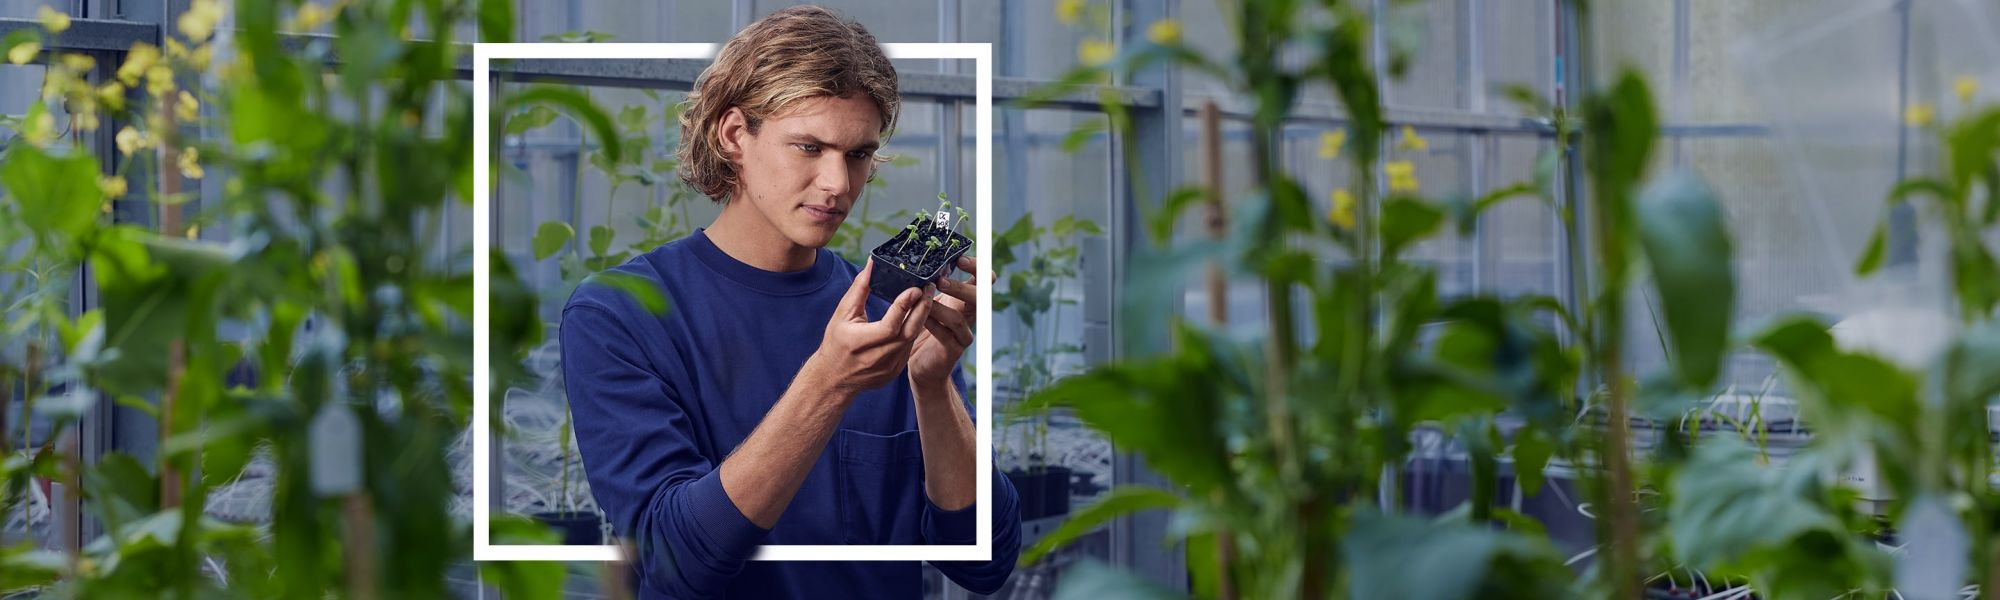 Student working in greenhouse studying plants